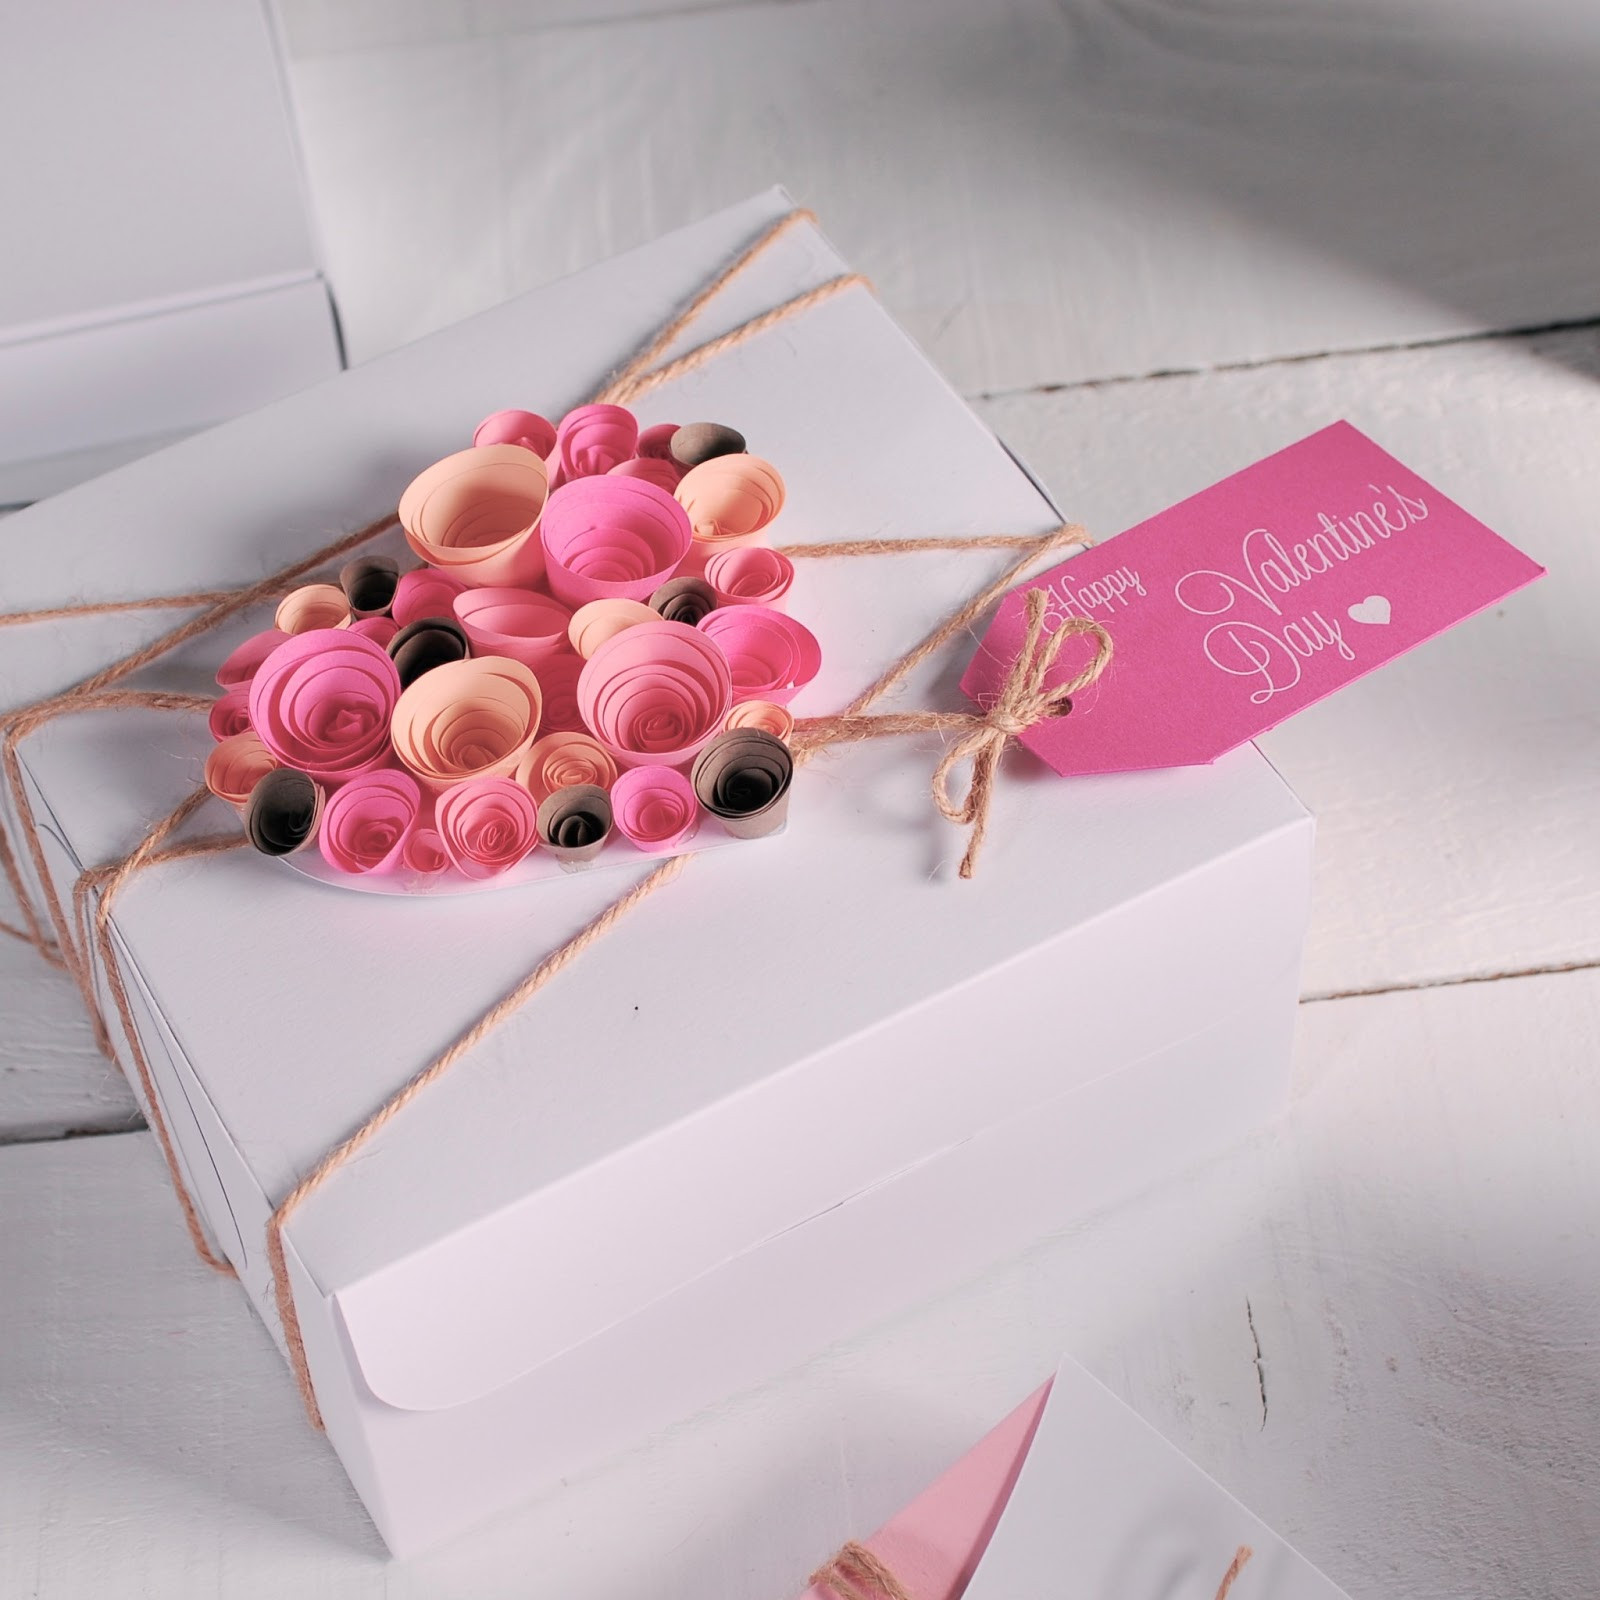 Best ideas about Gift Card Wrapping Ideas . Save or Pin Gift wrapping ideas for Valentines Day How to decorate a Now.